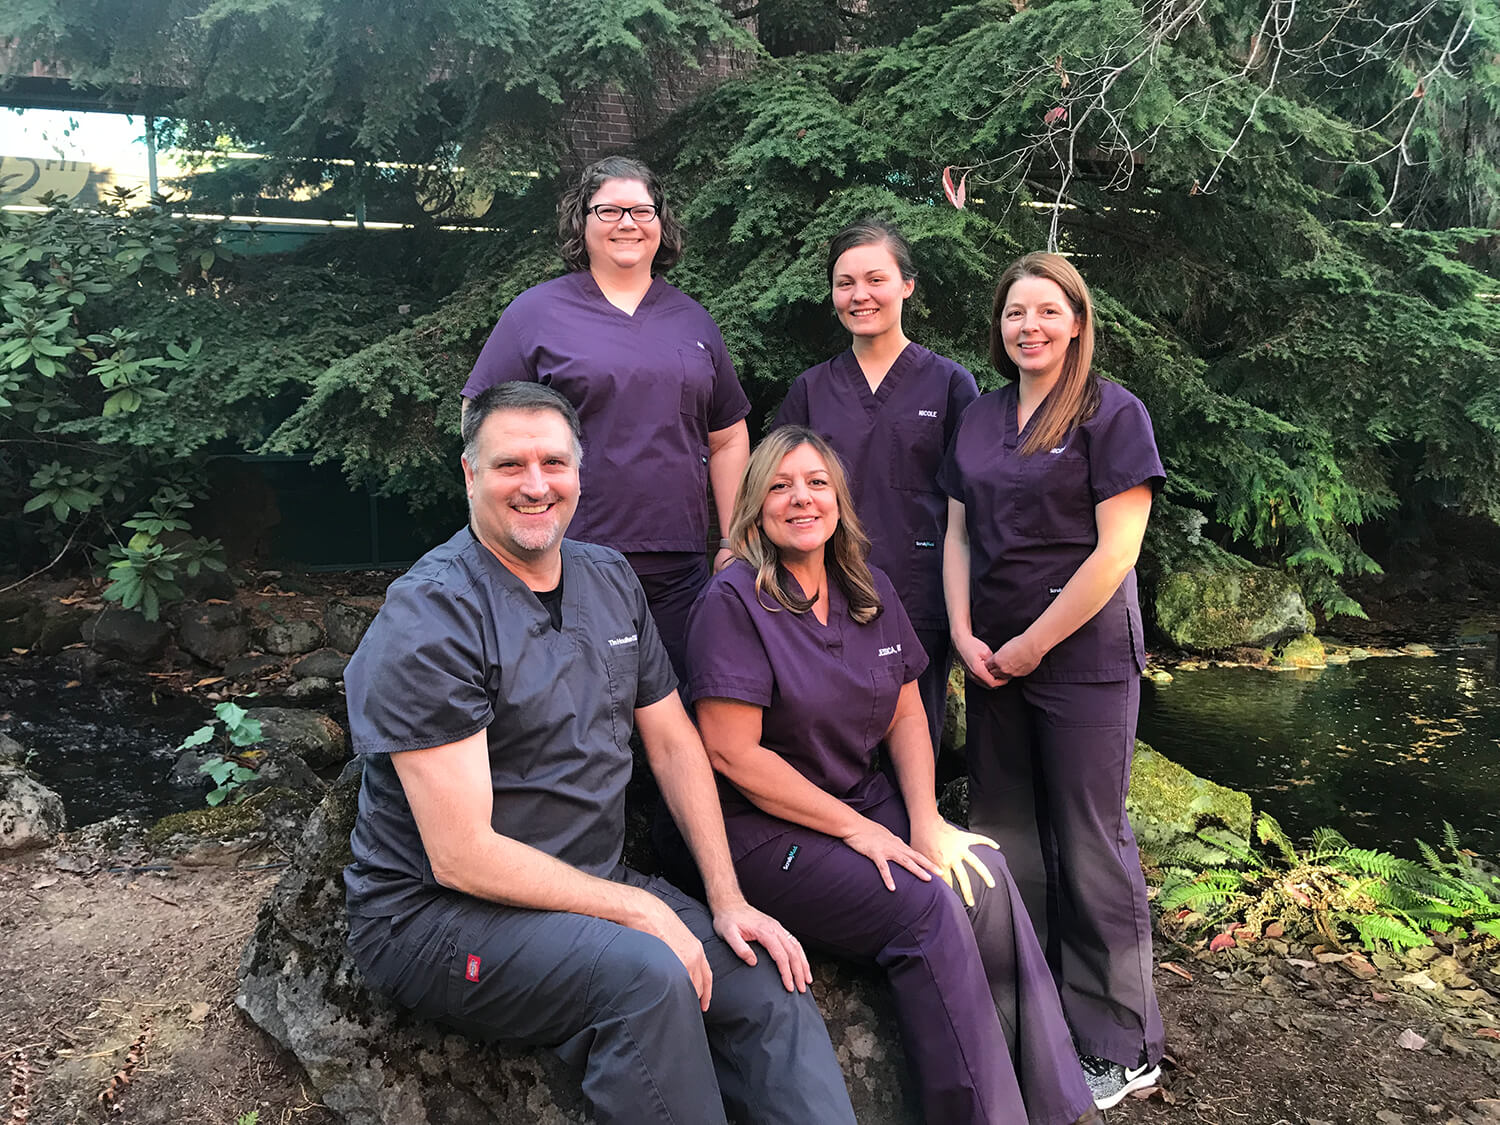 Dr. Houlihan and his team at Dental Professionals are ready to help you smile with confidence.